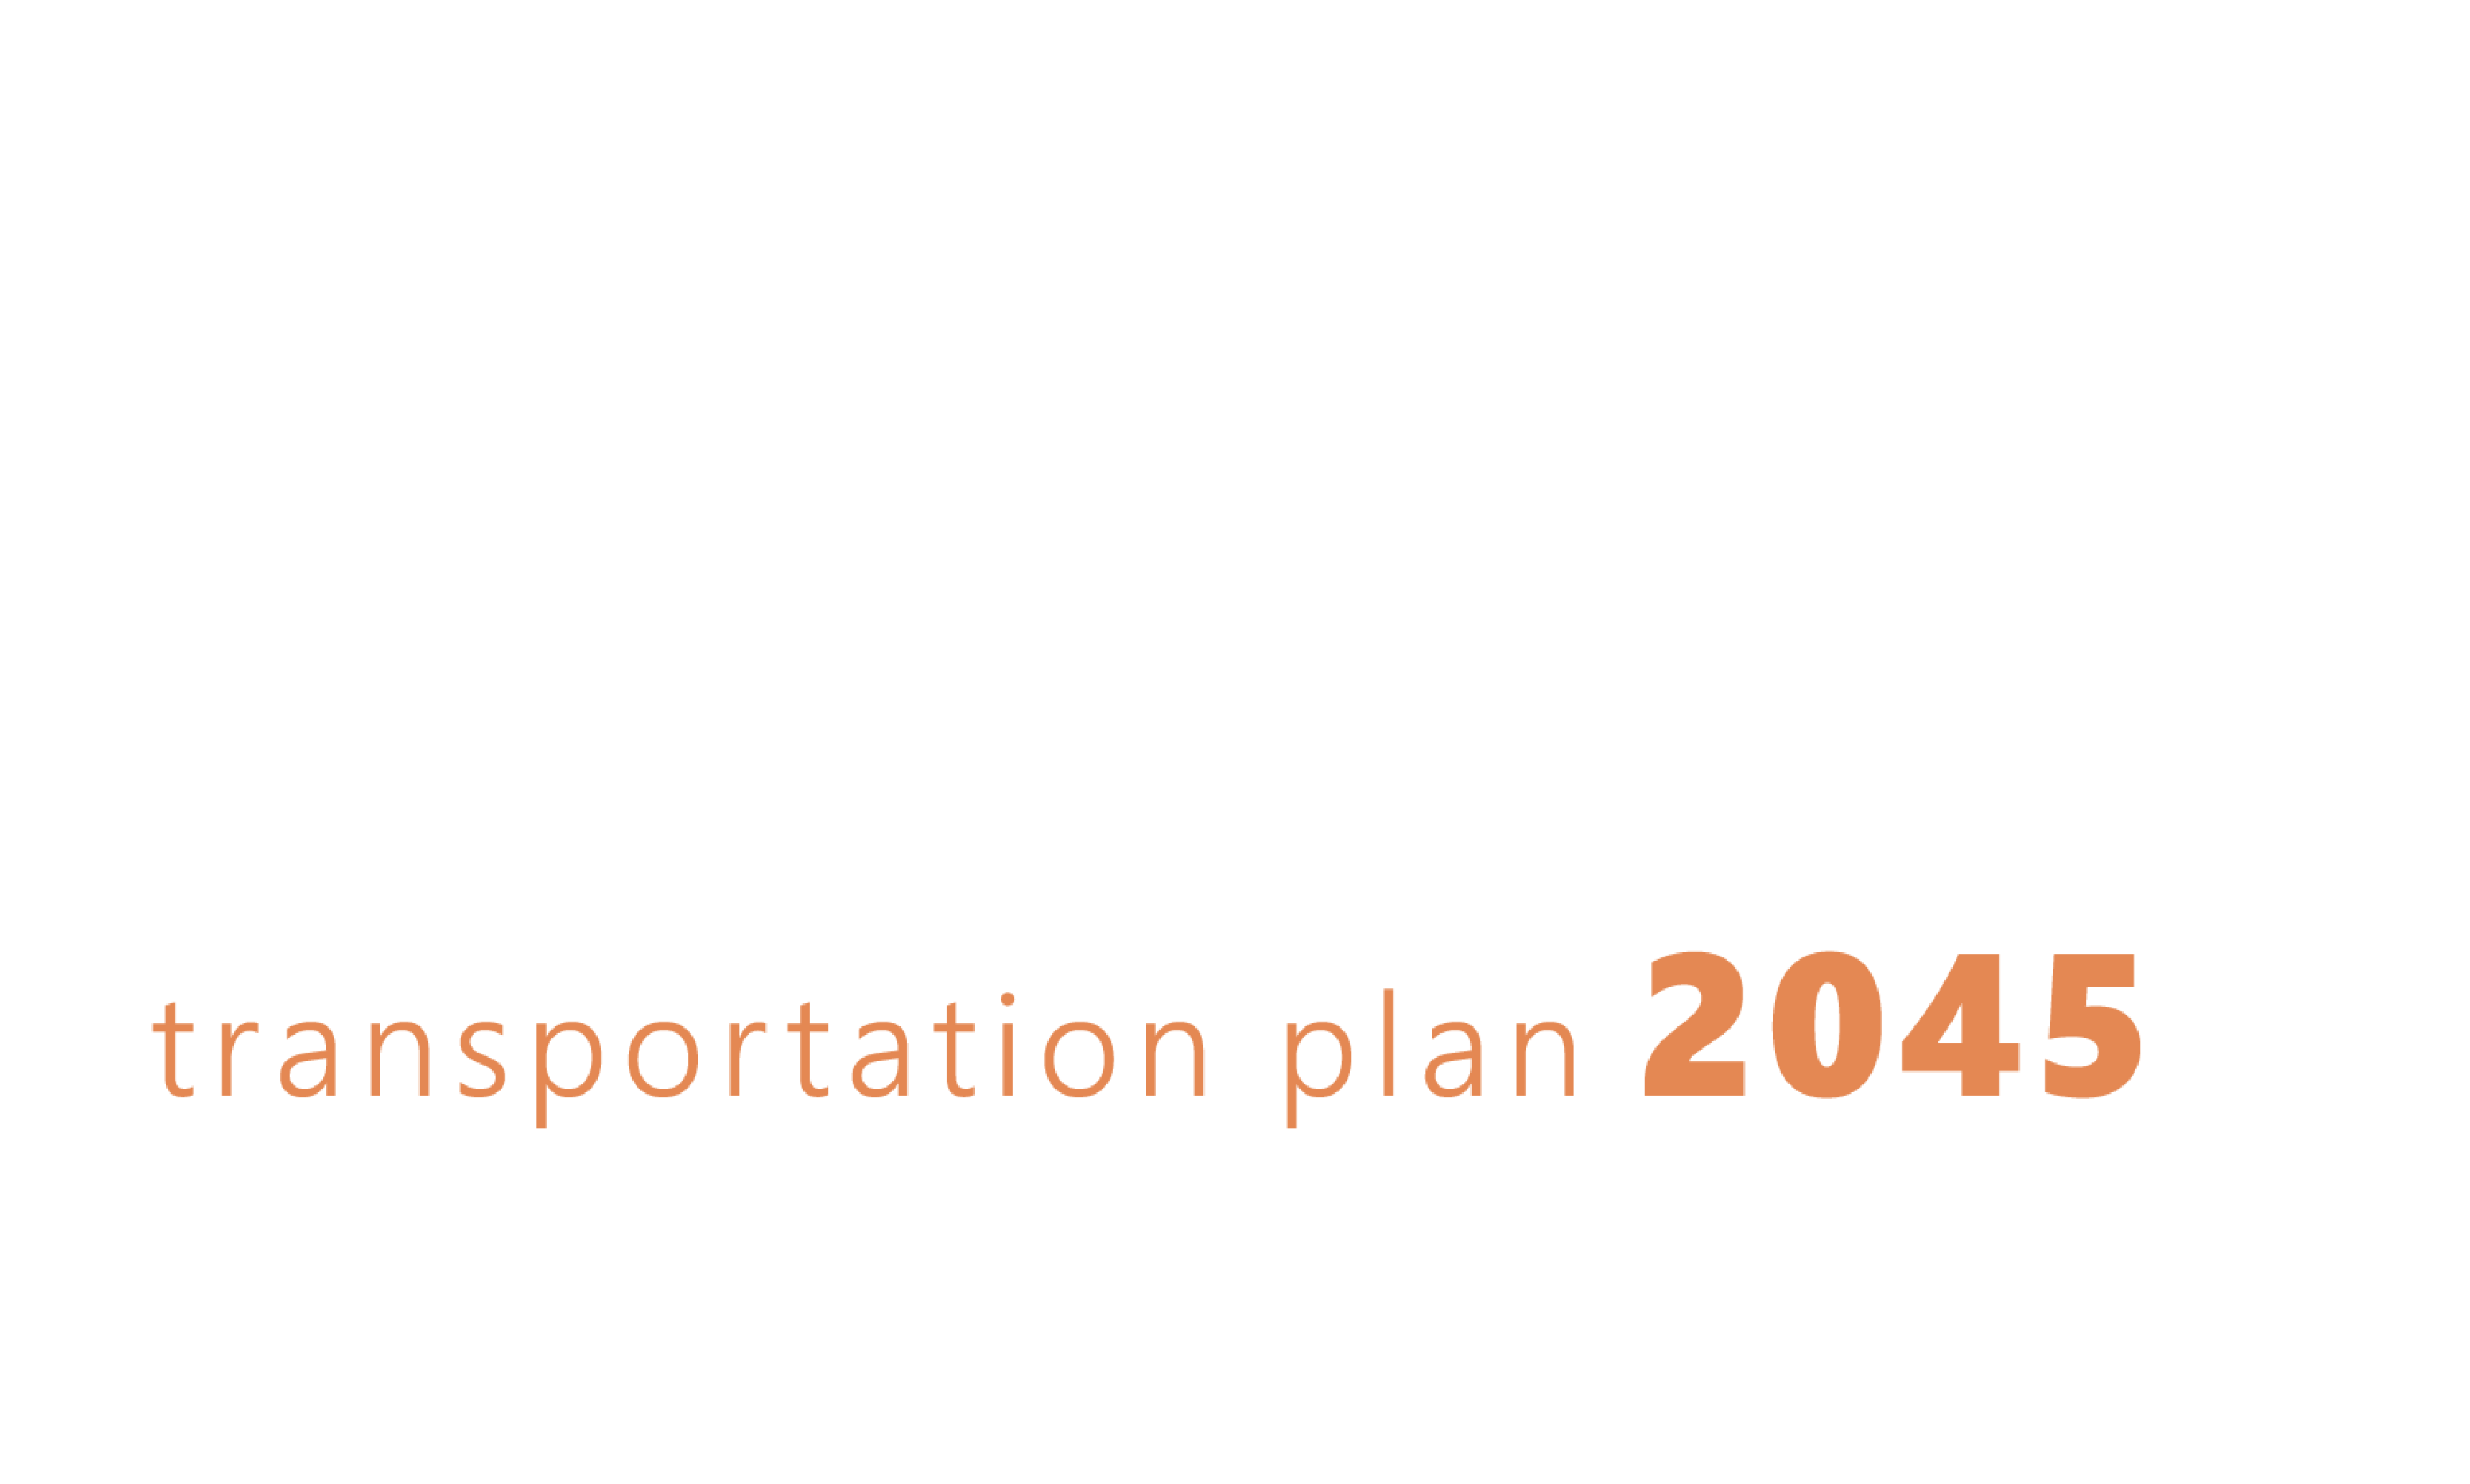 Michiana on the Move: 2045 Transportation Plan